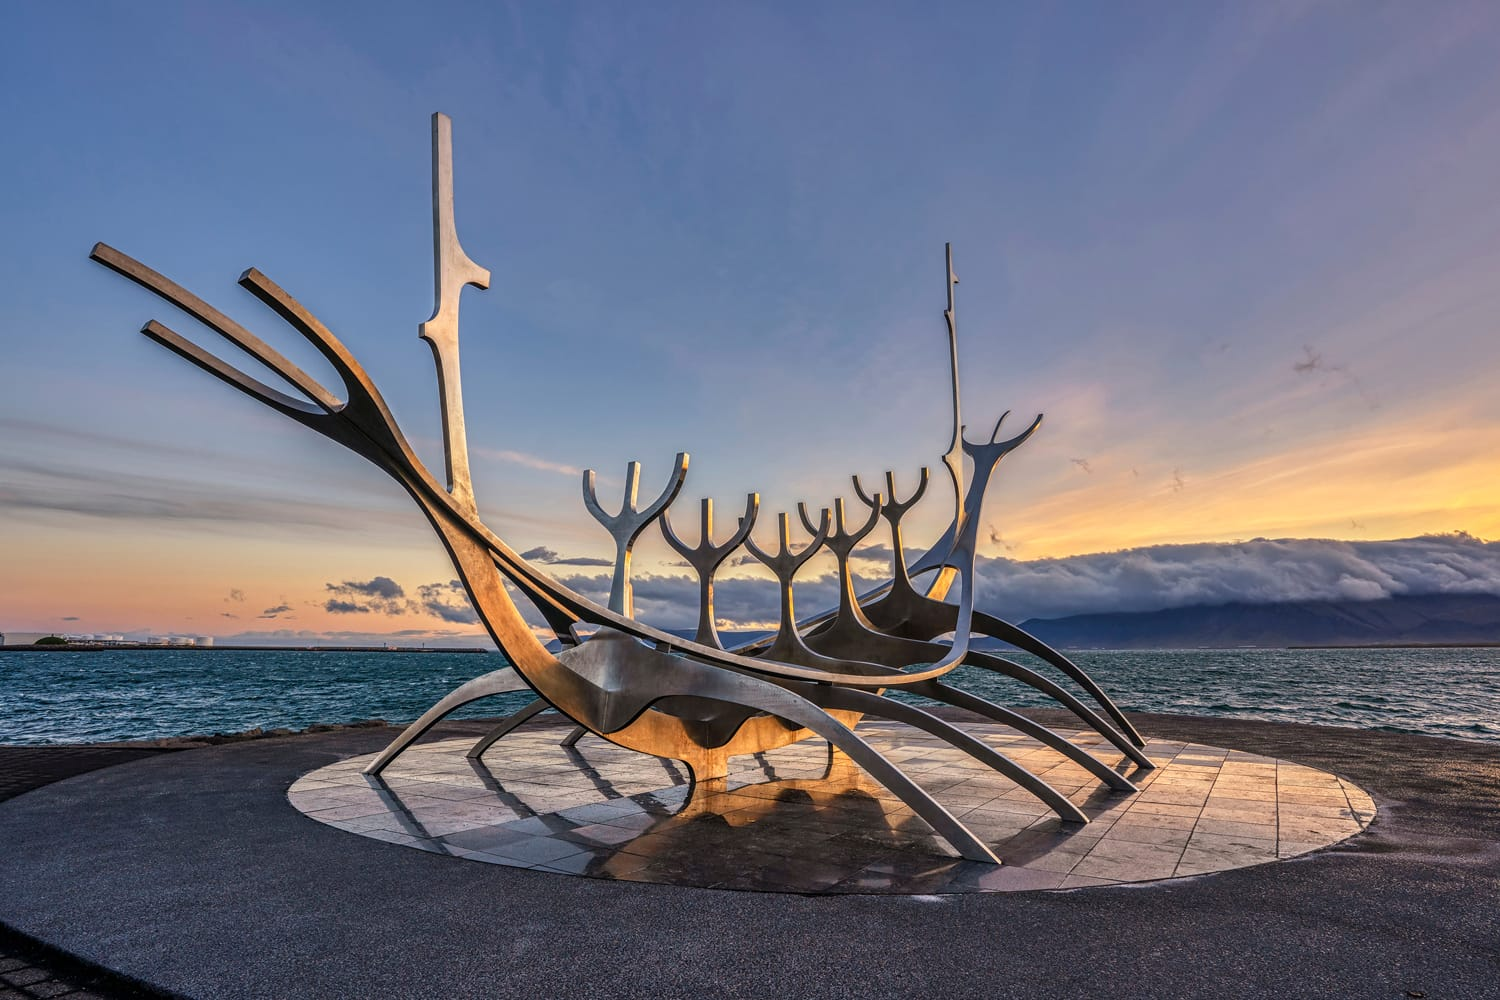 Sunrise at the iconic Sun Voyager sculpture in Reykjavik, Iceland.